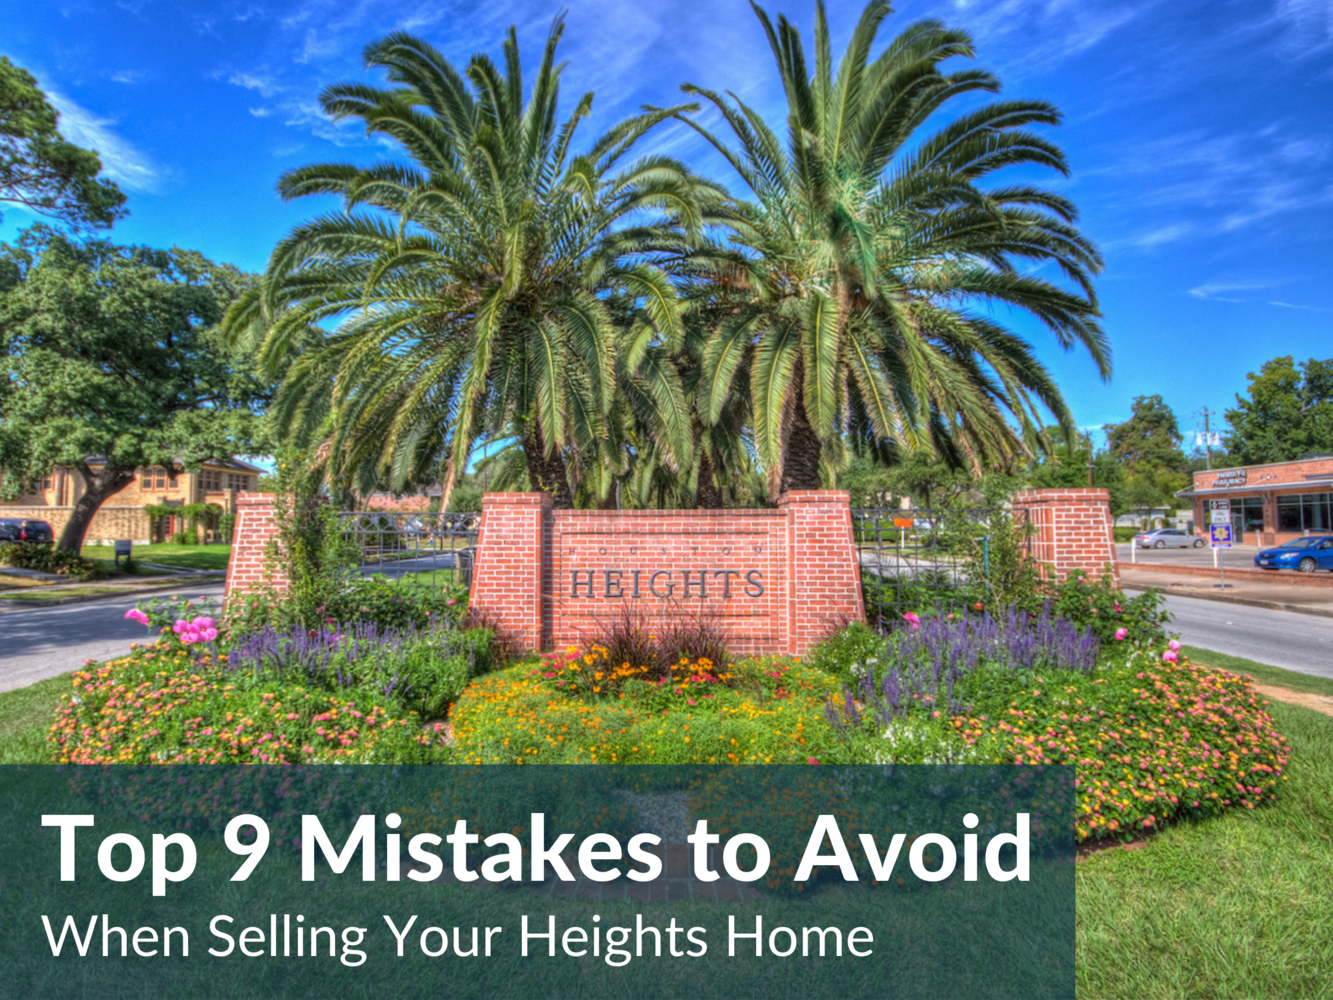 Avoid These Top 9 Heights Home Selling Mistakes